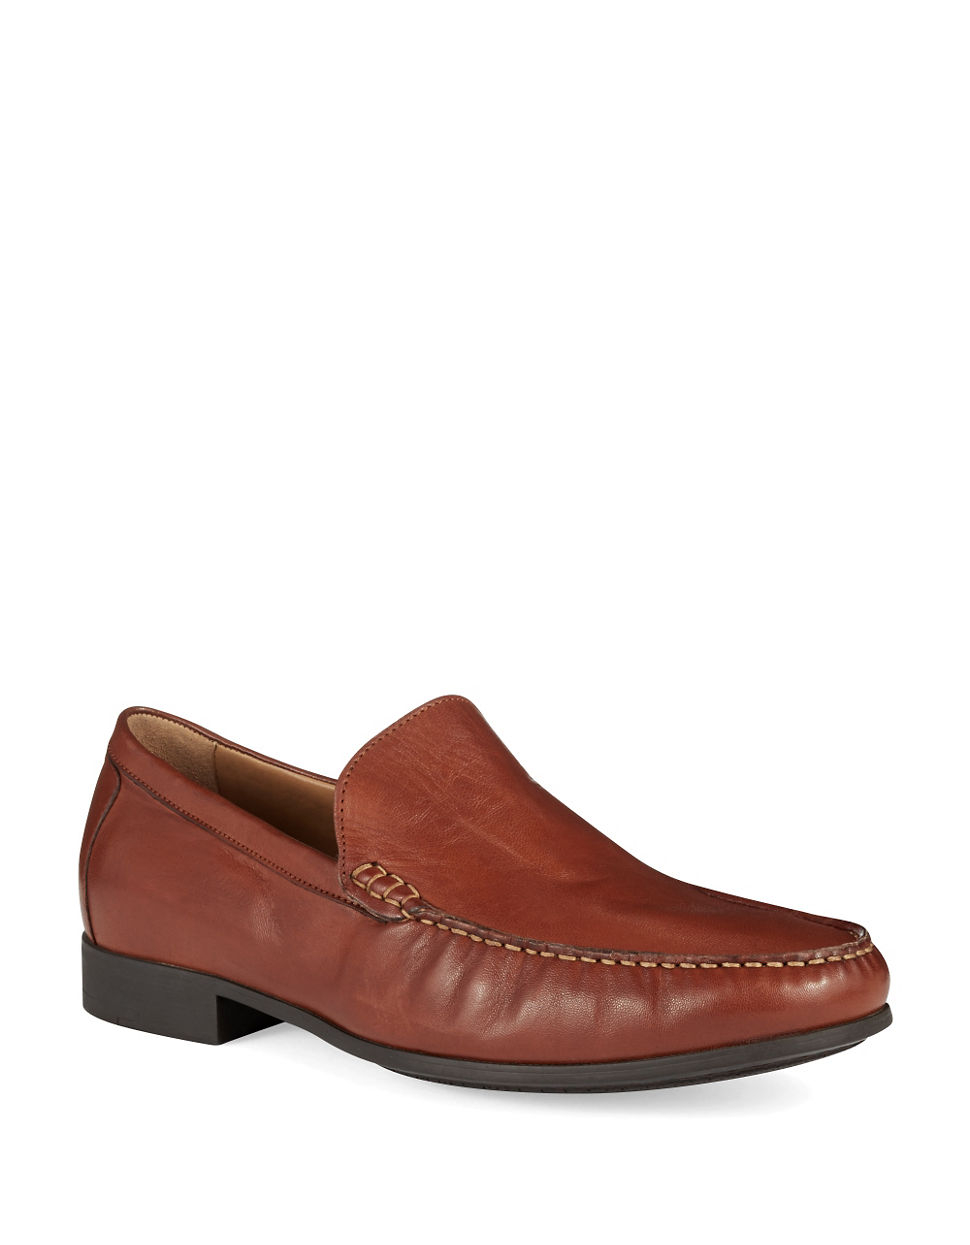 Insole Height In Normsal Dress Shoes